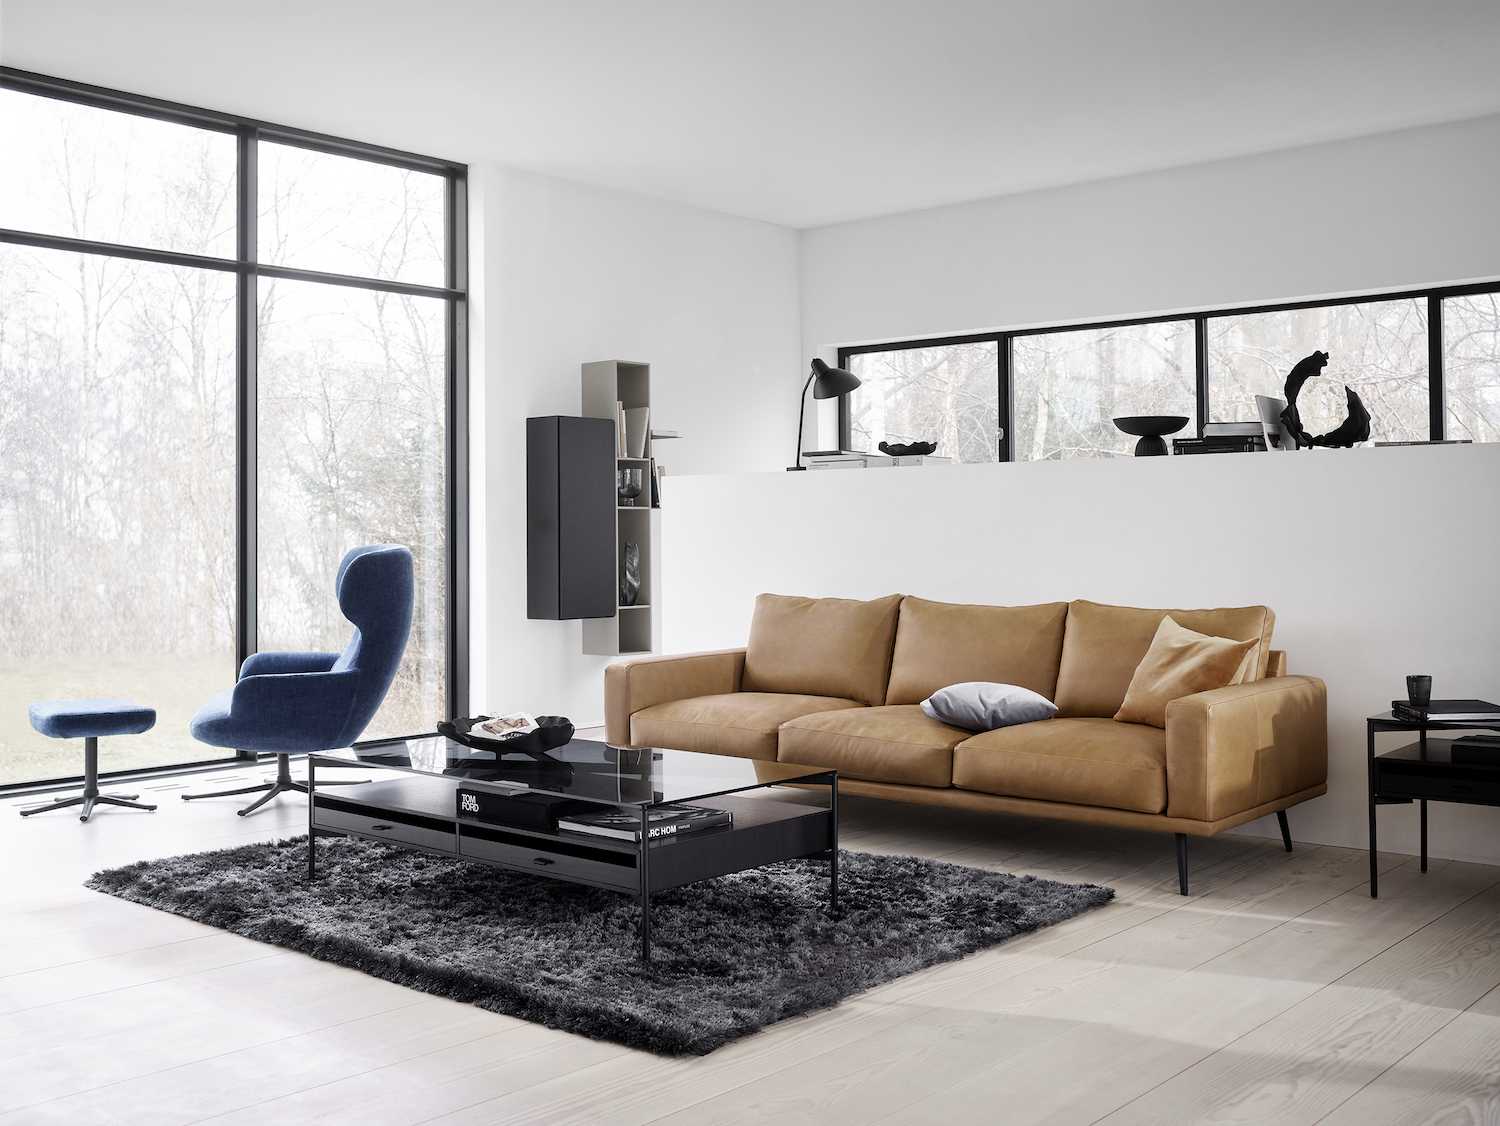 BoConcept press center